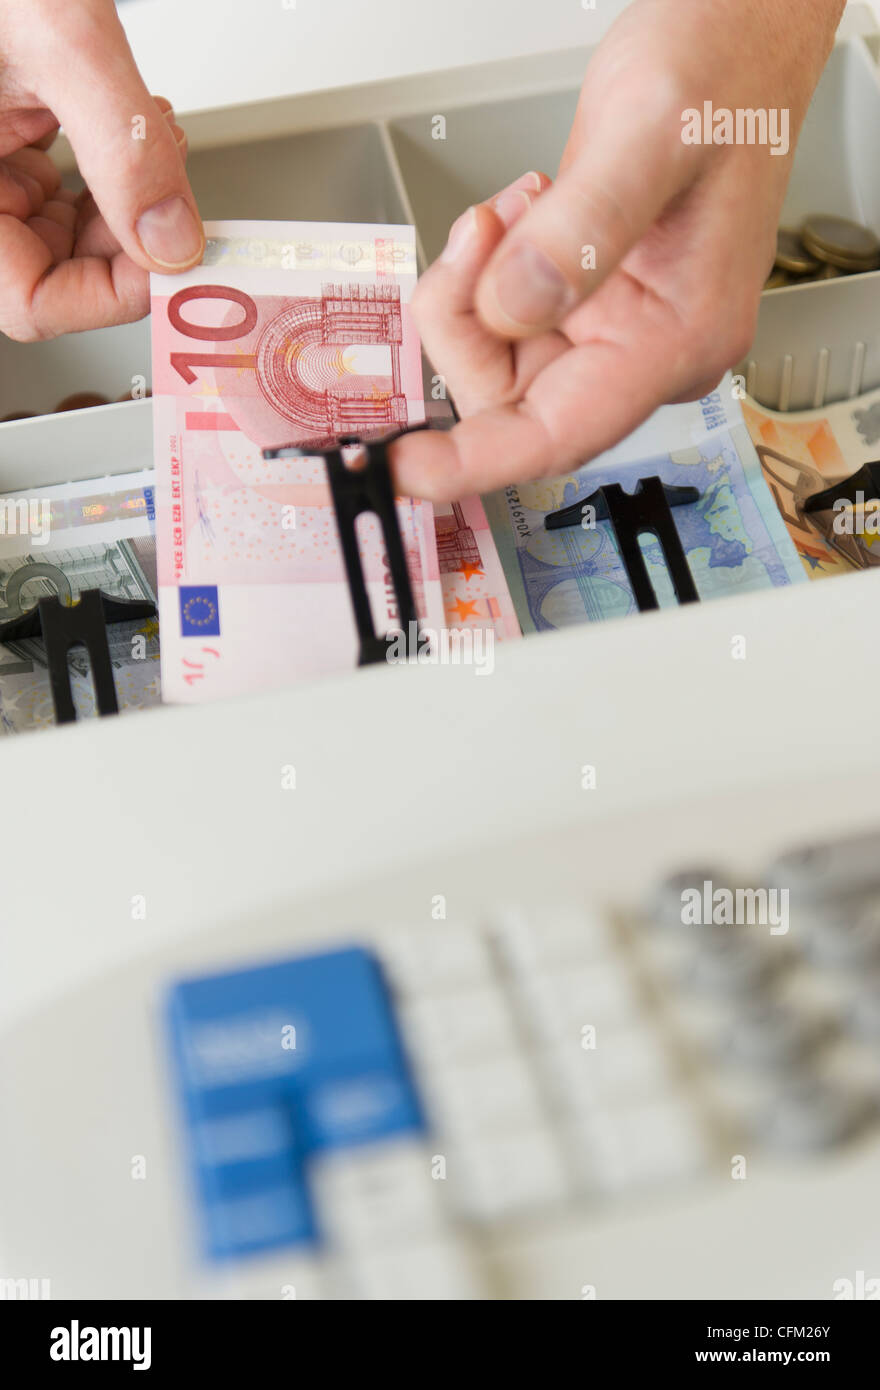 Close up of man's hand putting banknotes into cash register, studio shot - Stock Image